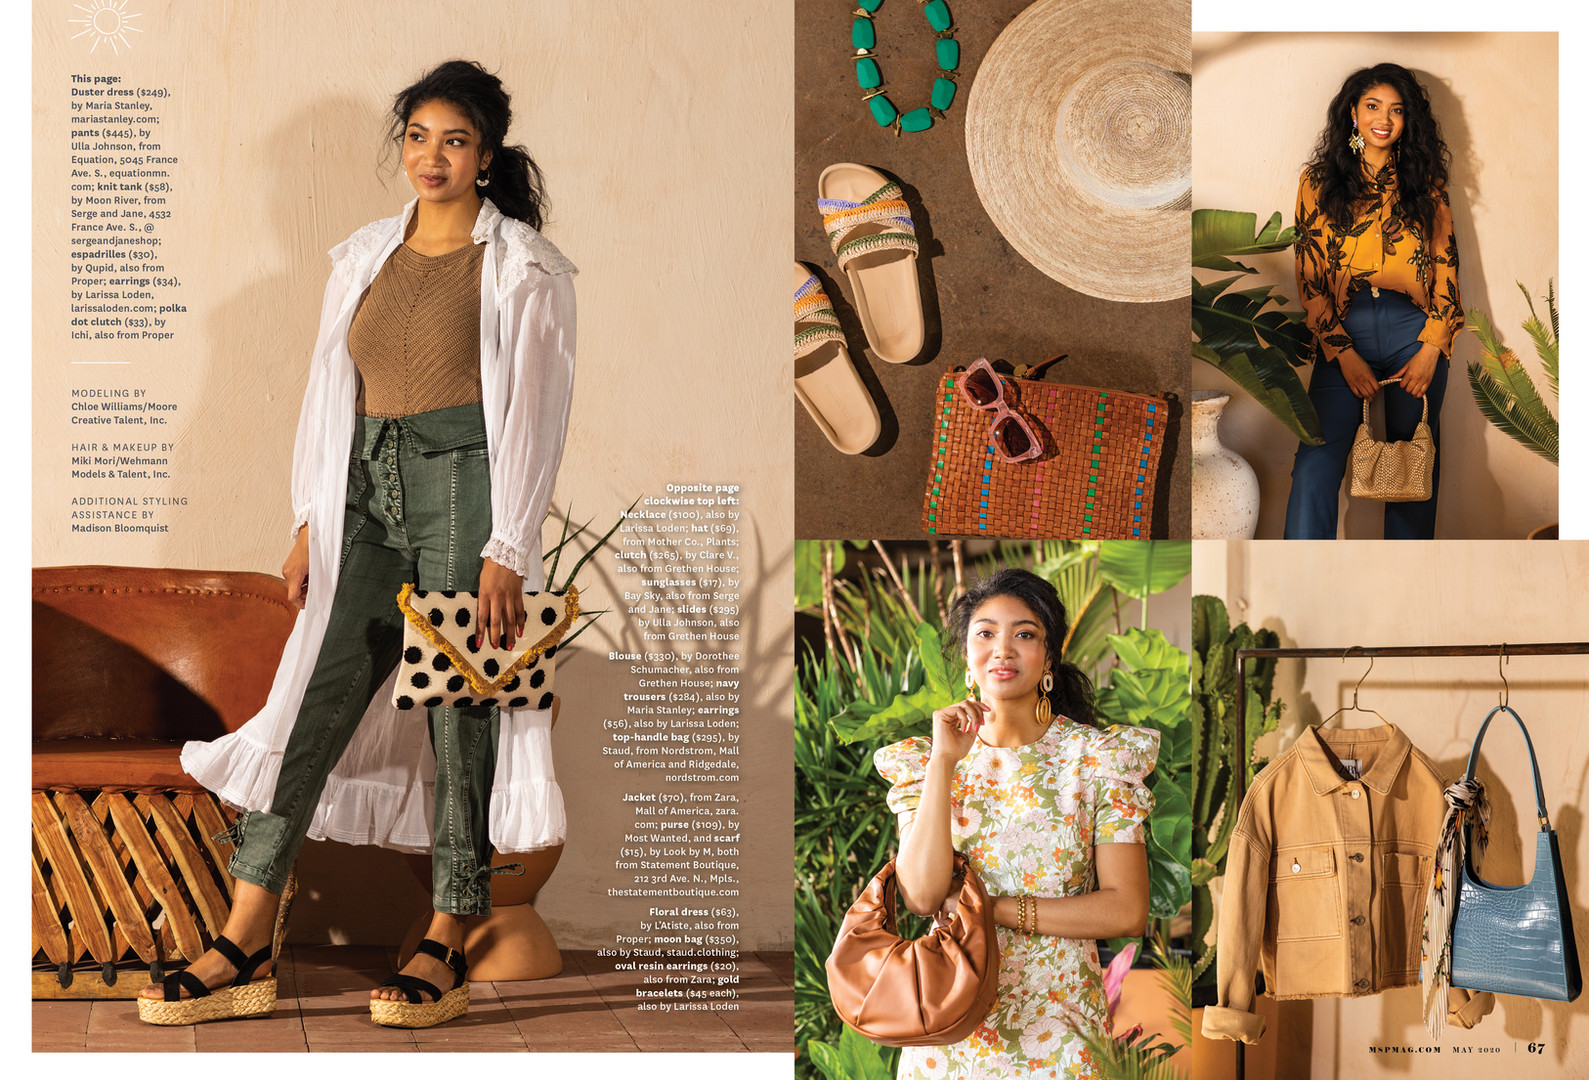 Mpls.St.Paul Magazine May 2020 Fashion Feature